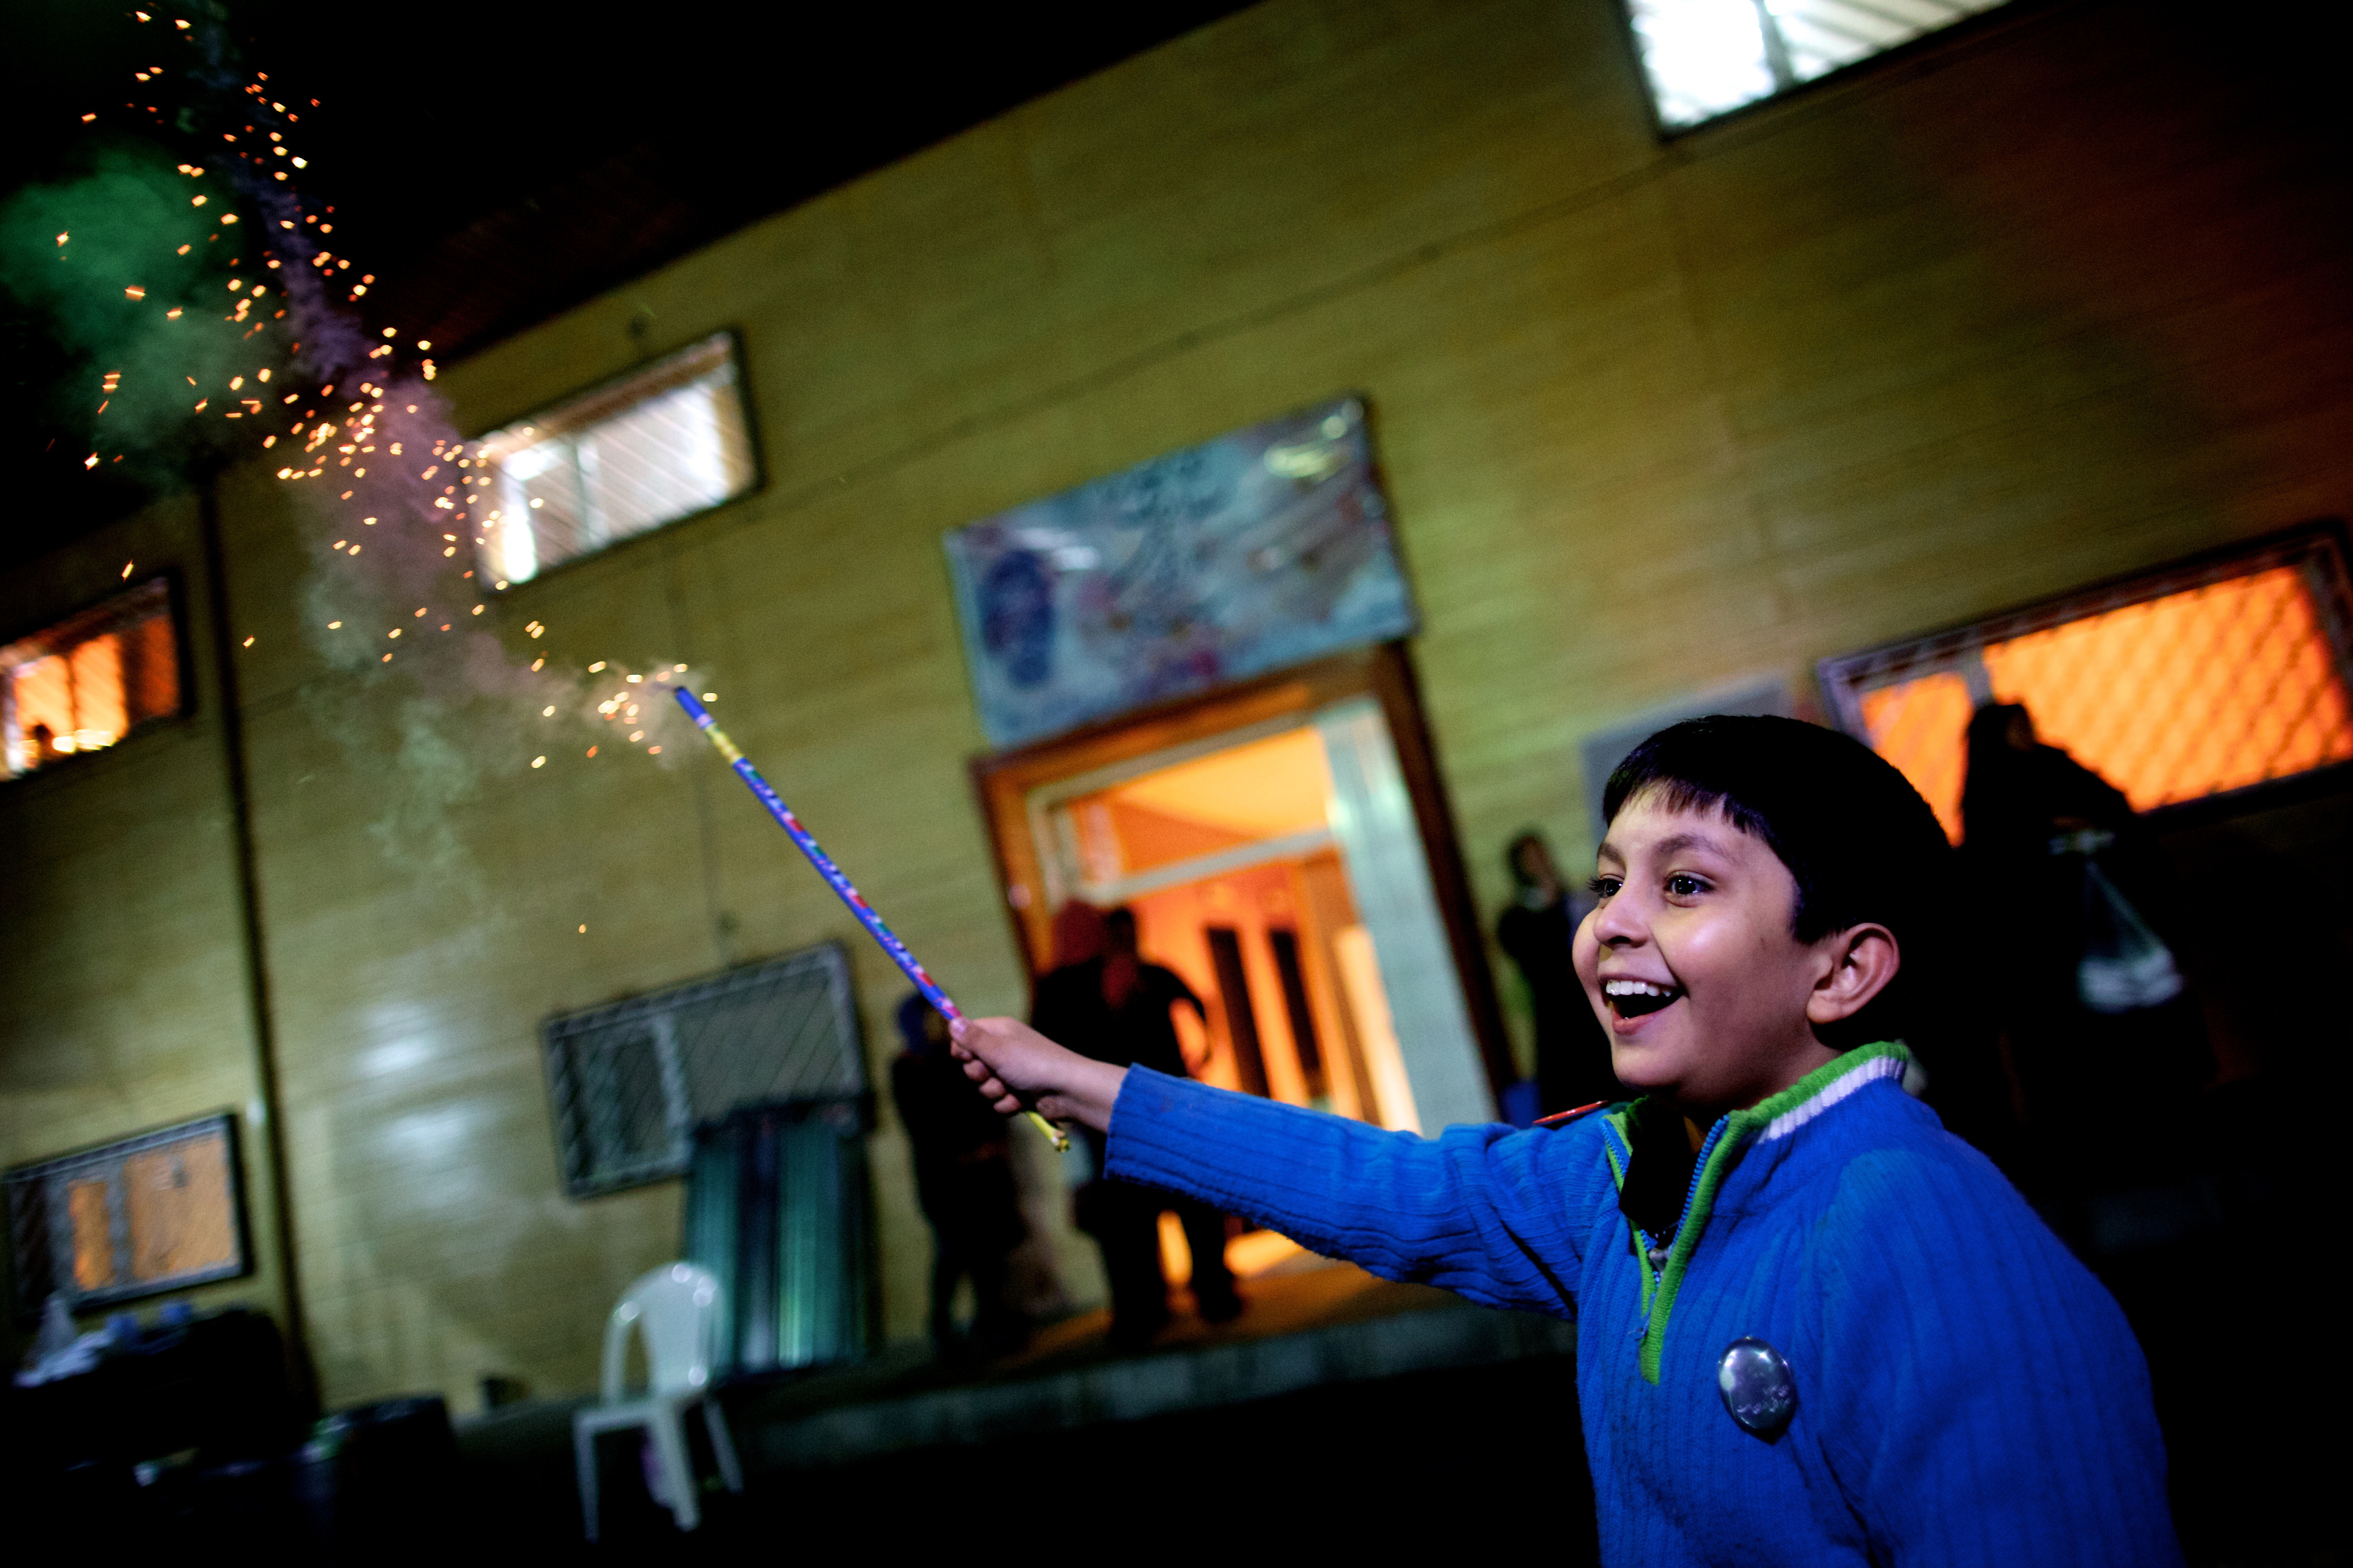 An Iranian boy holds a fire cracker in southern Tehran on March 19, 2013 during the Wednesday Fire feast, or Chaharshanbeh Soori, held annually on the last Wednesday eve before the Spring holiday of Noruz. The Iranian new year that begins on March 20 coincides with the first day of spring during which locals revive the Zoroastrian celebration of lighting a fire and dancing around the flame. AFP PHOTO/BEHROUZ MEHRI        (Photo credit should read BEHROUZ MEHRI/AFP/Getty Images)